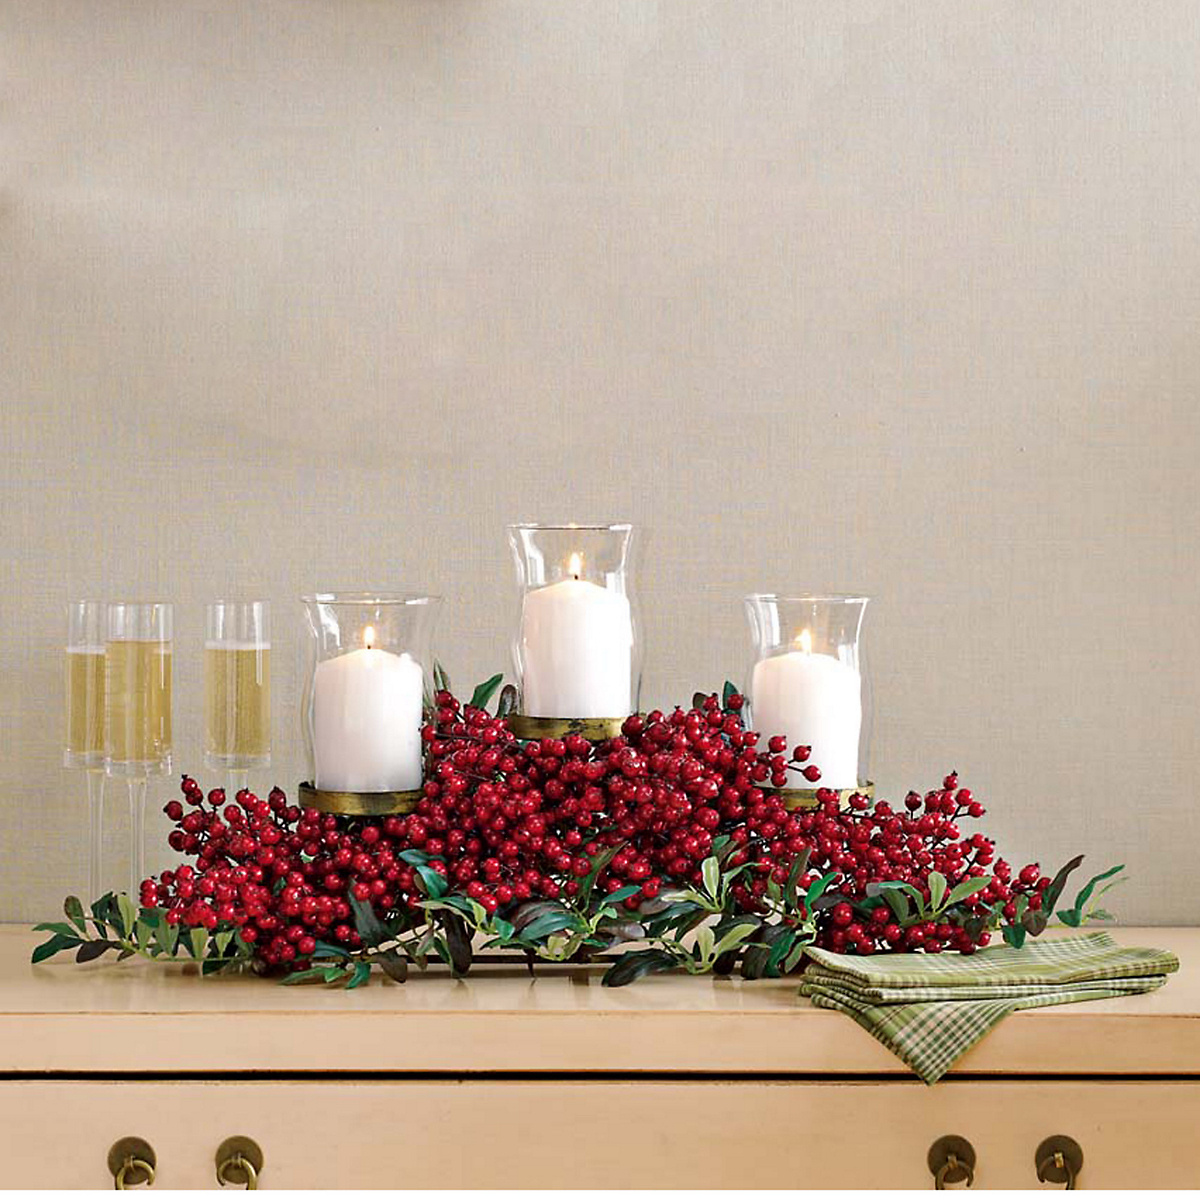 Festive Red Berry Centerpiece